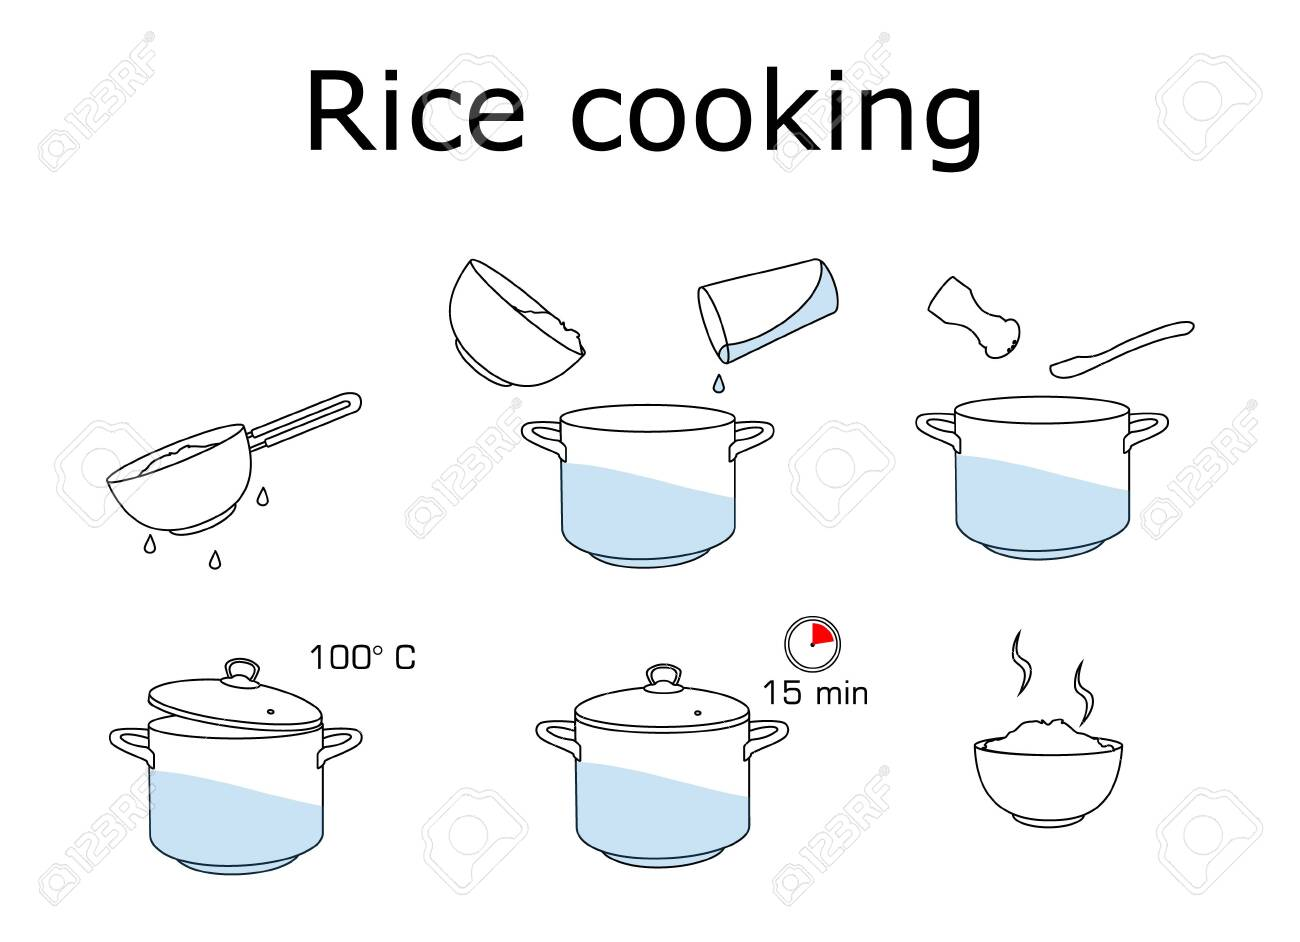 How to cook rice with few ingredients easy recipe. - 133676487